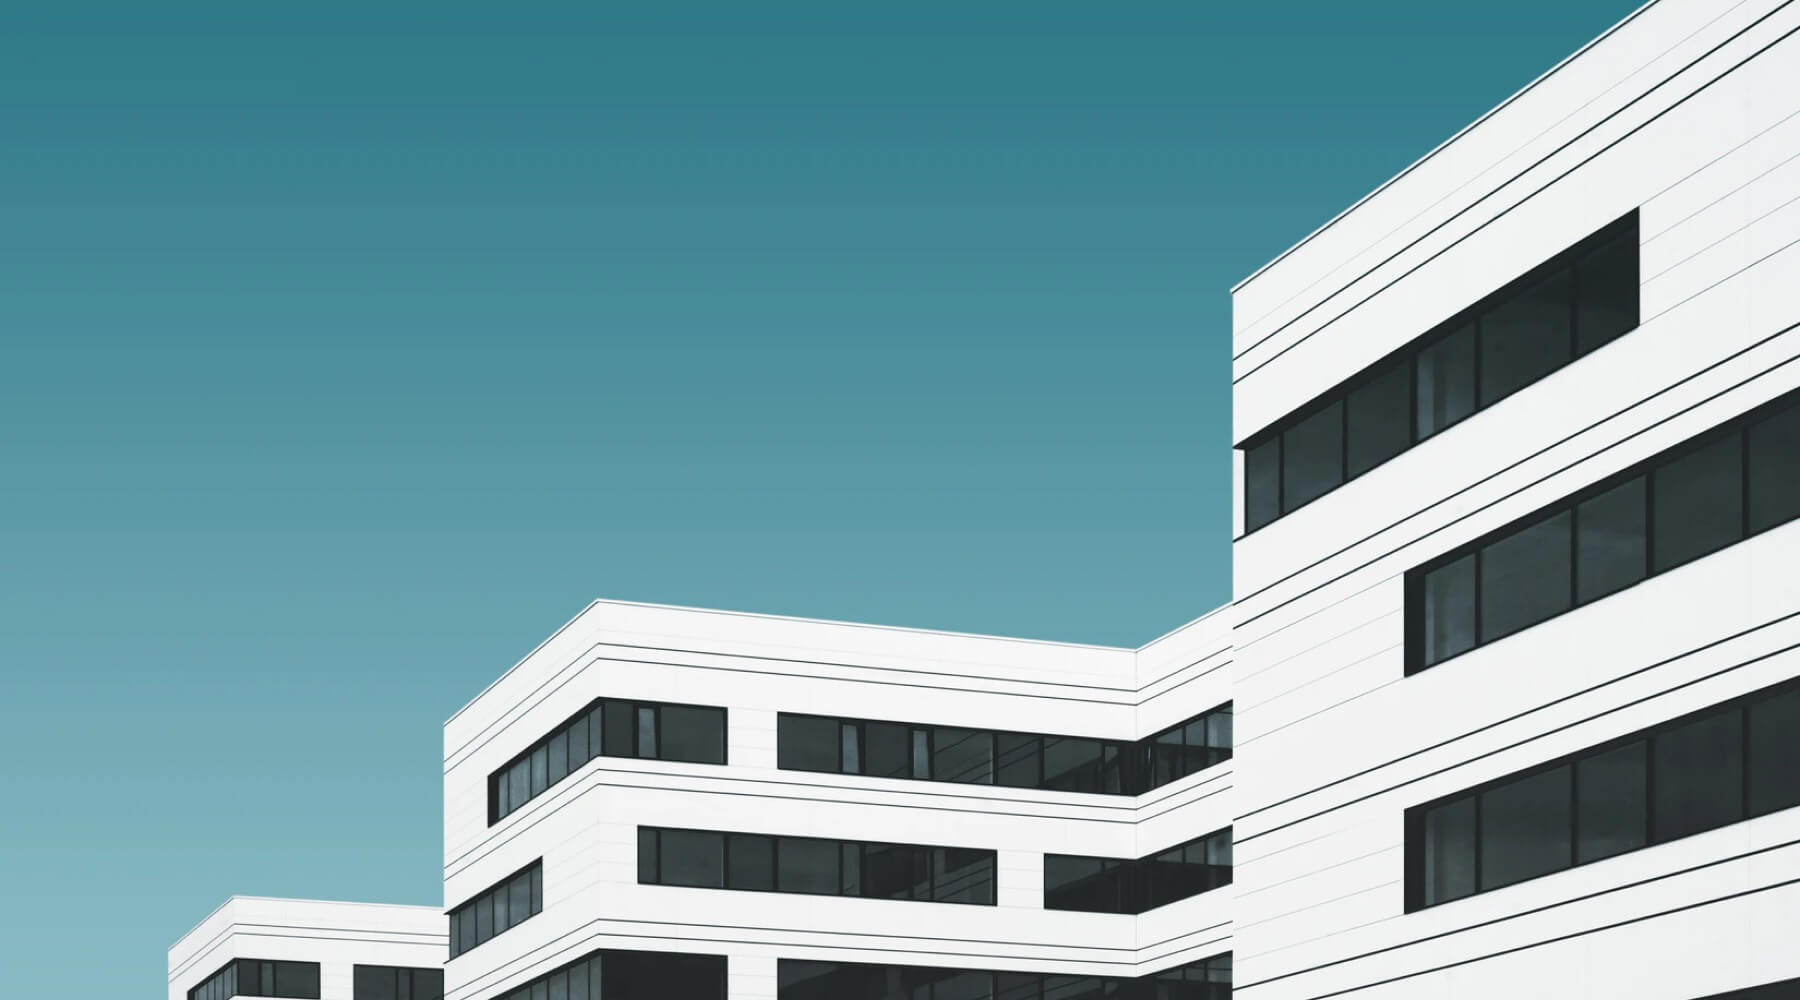 Benefits of Internet of Things for hospitals and healthcare